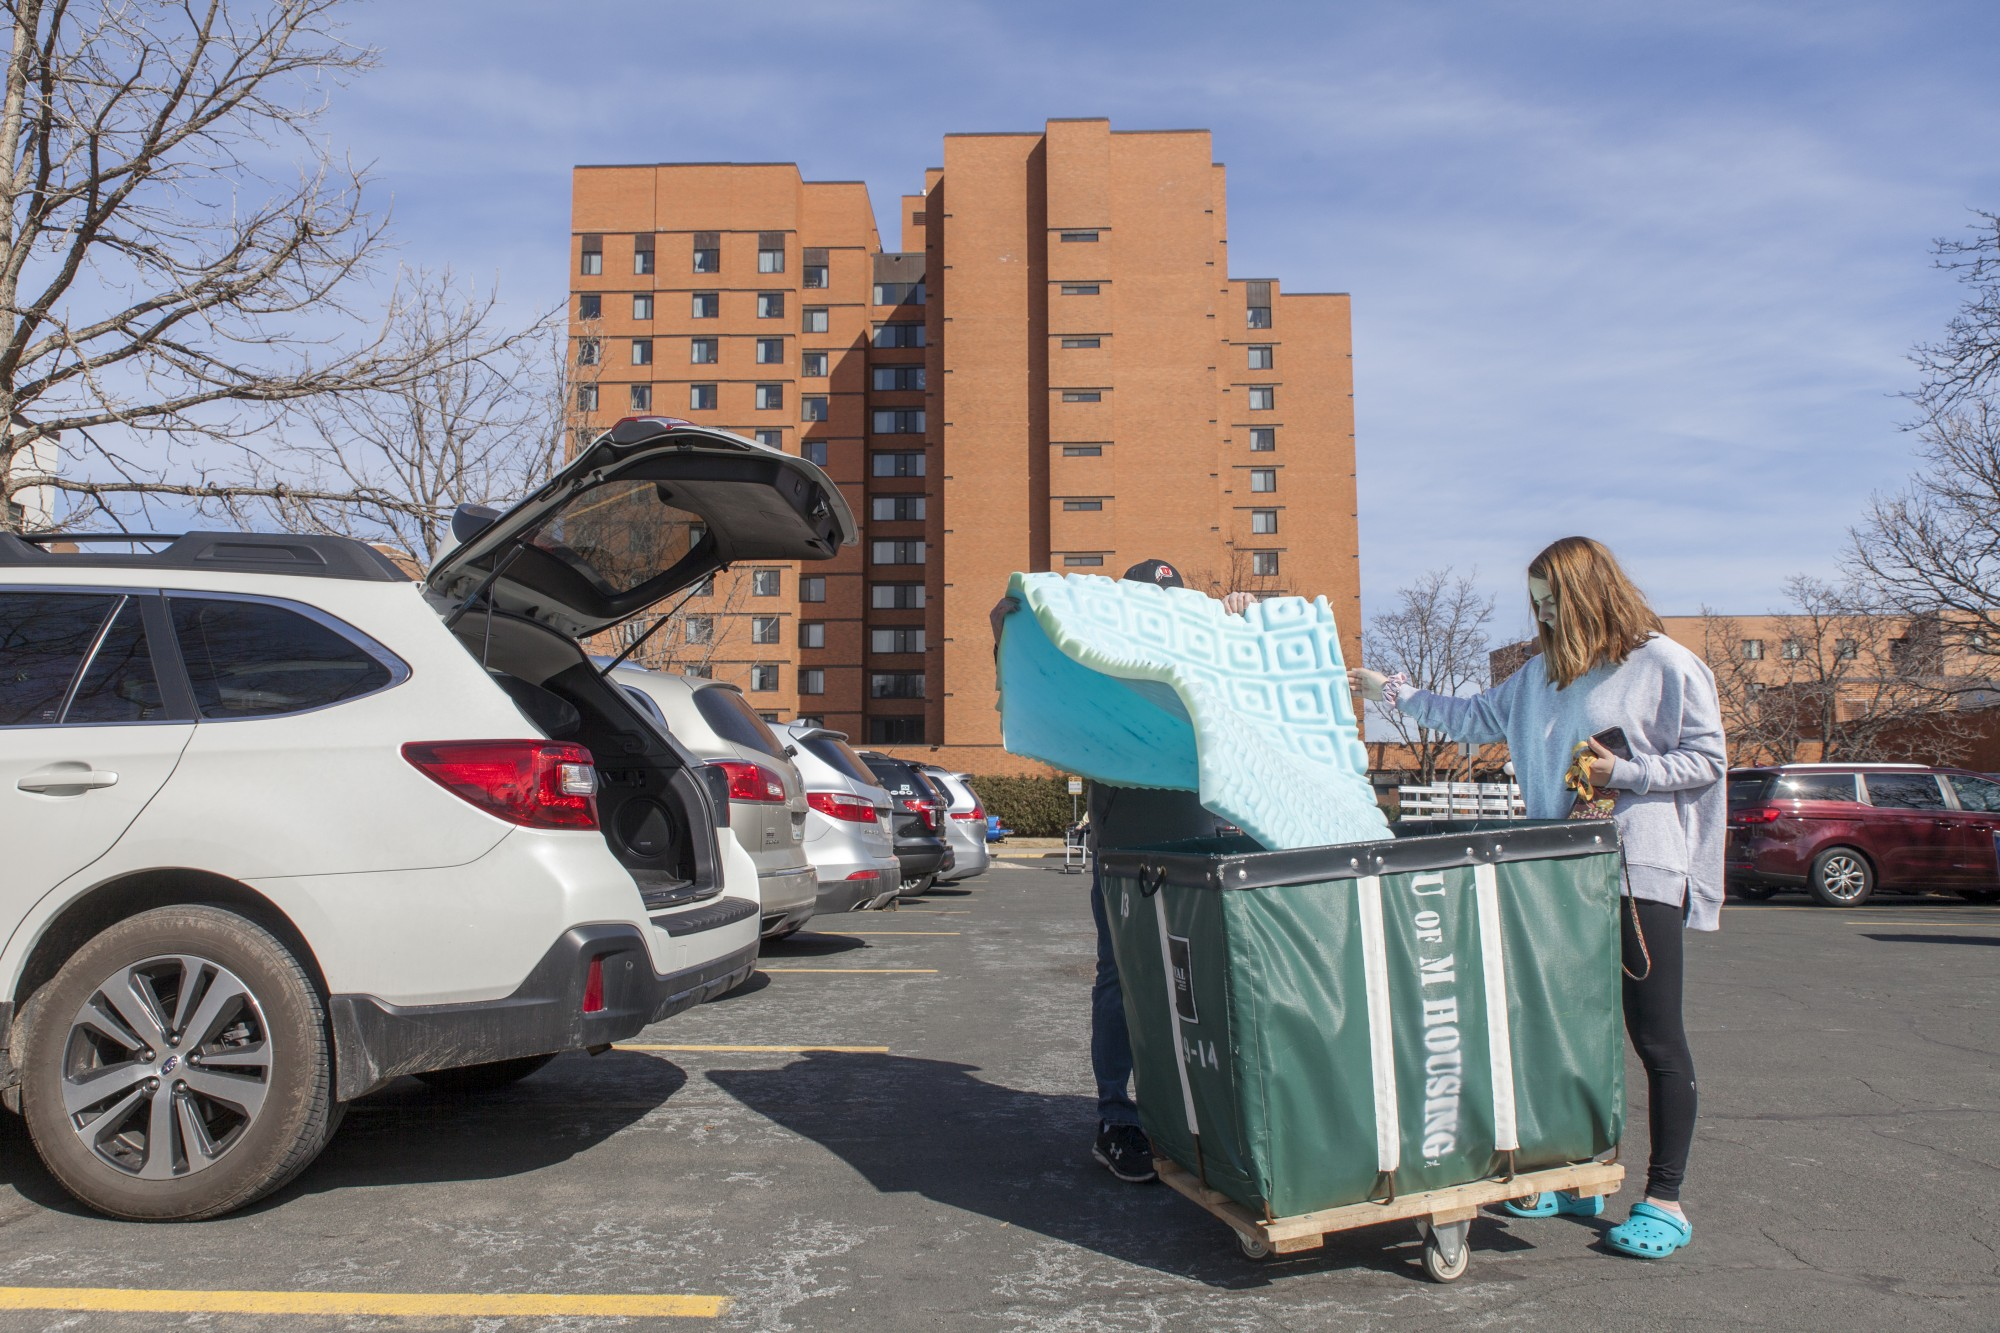 Freshman Marissa Mazzetta loads her belongings in preparation for her return to Illinois with her father, Jim Mazzetta, at Middlebrook Hall on Saturday, March 21. Mazzetta, like many freshmen at the University of Minnesota, is moving out of University housing as a result of COVID-19.